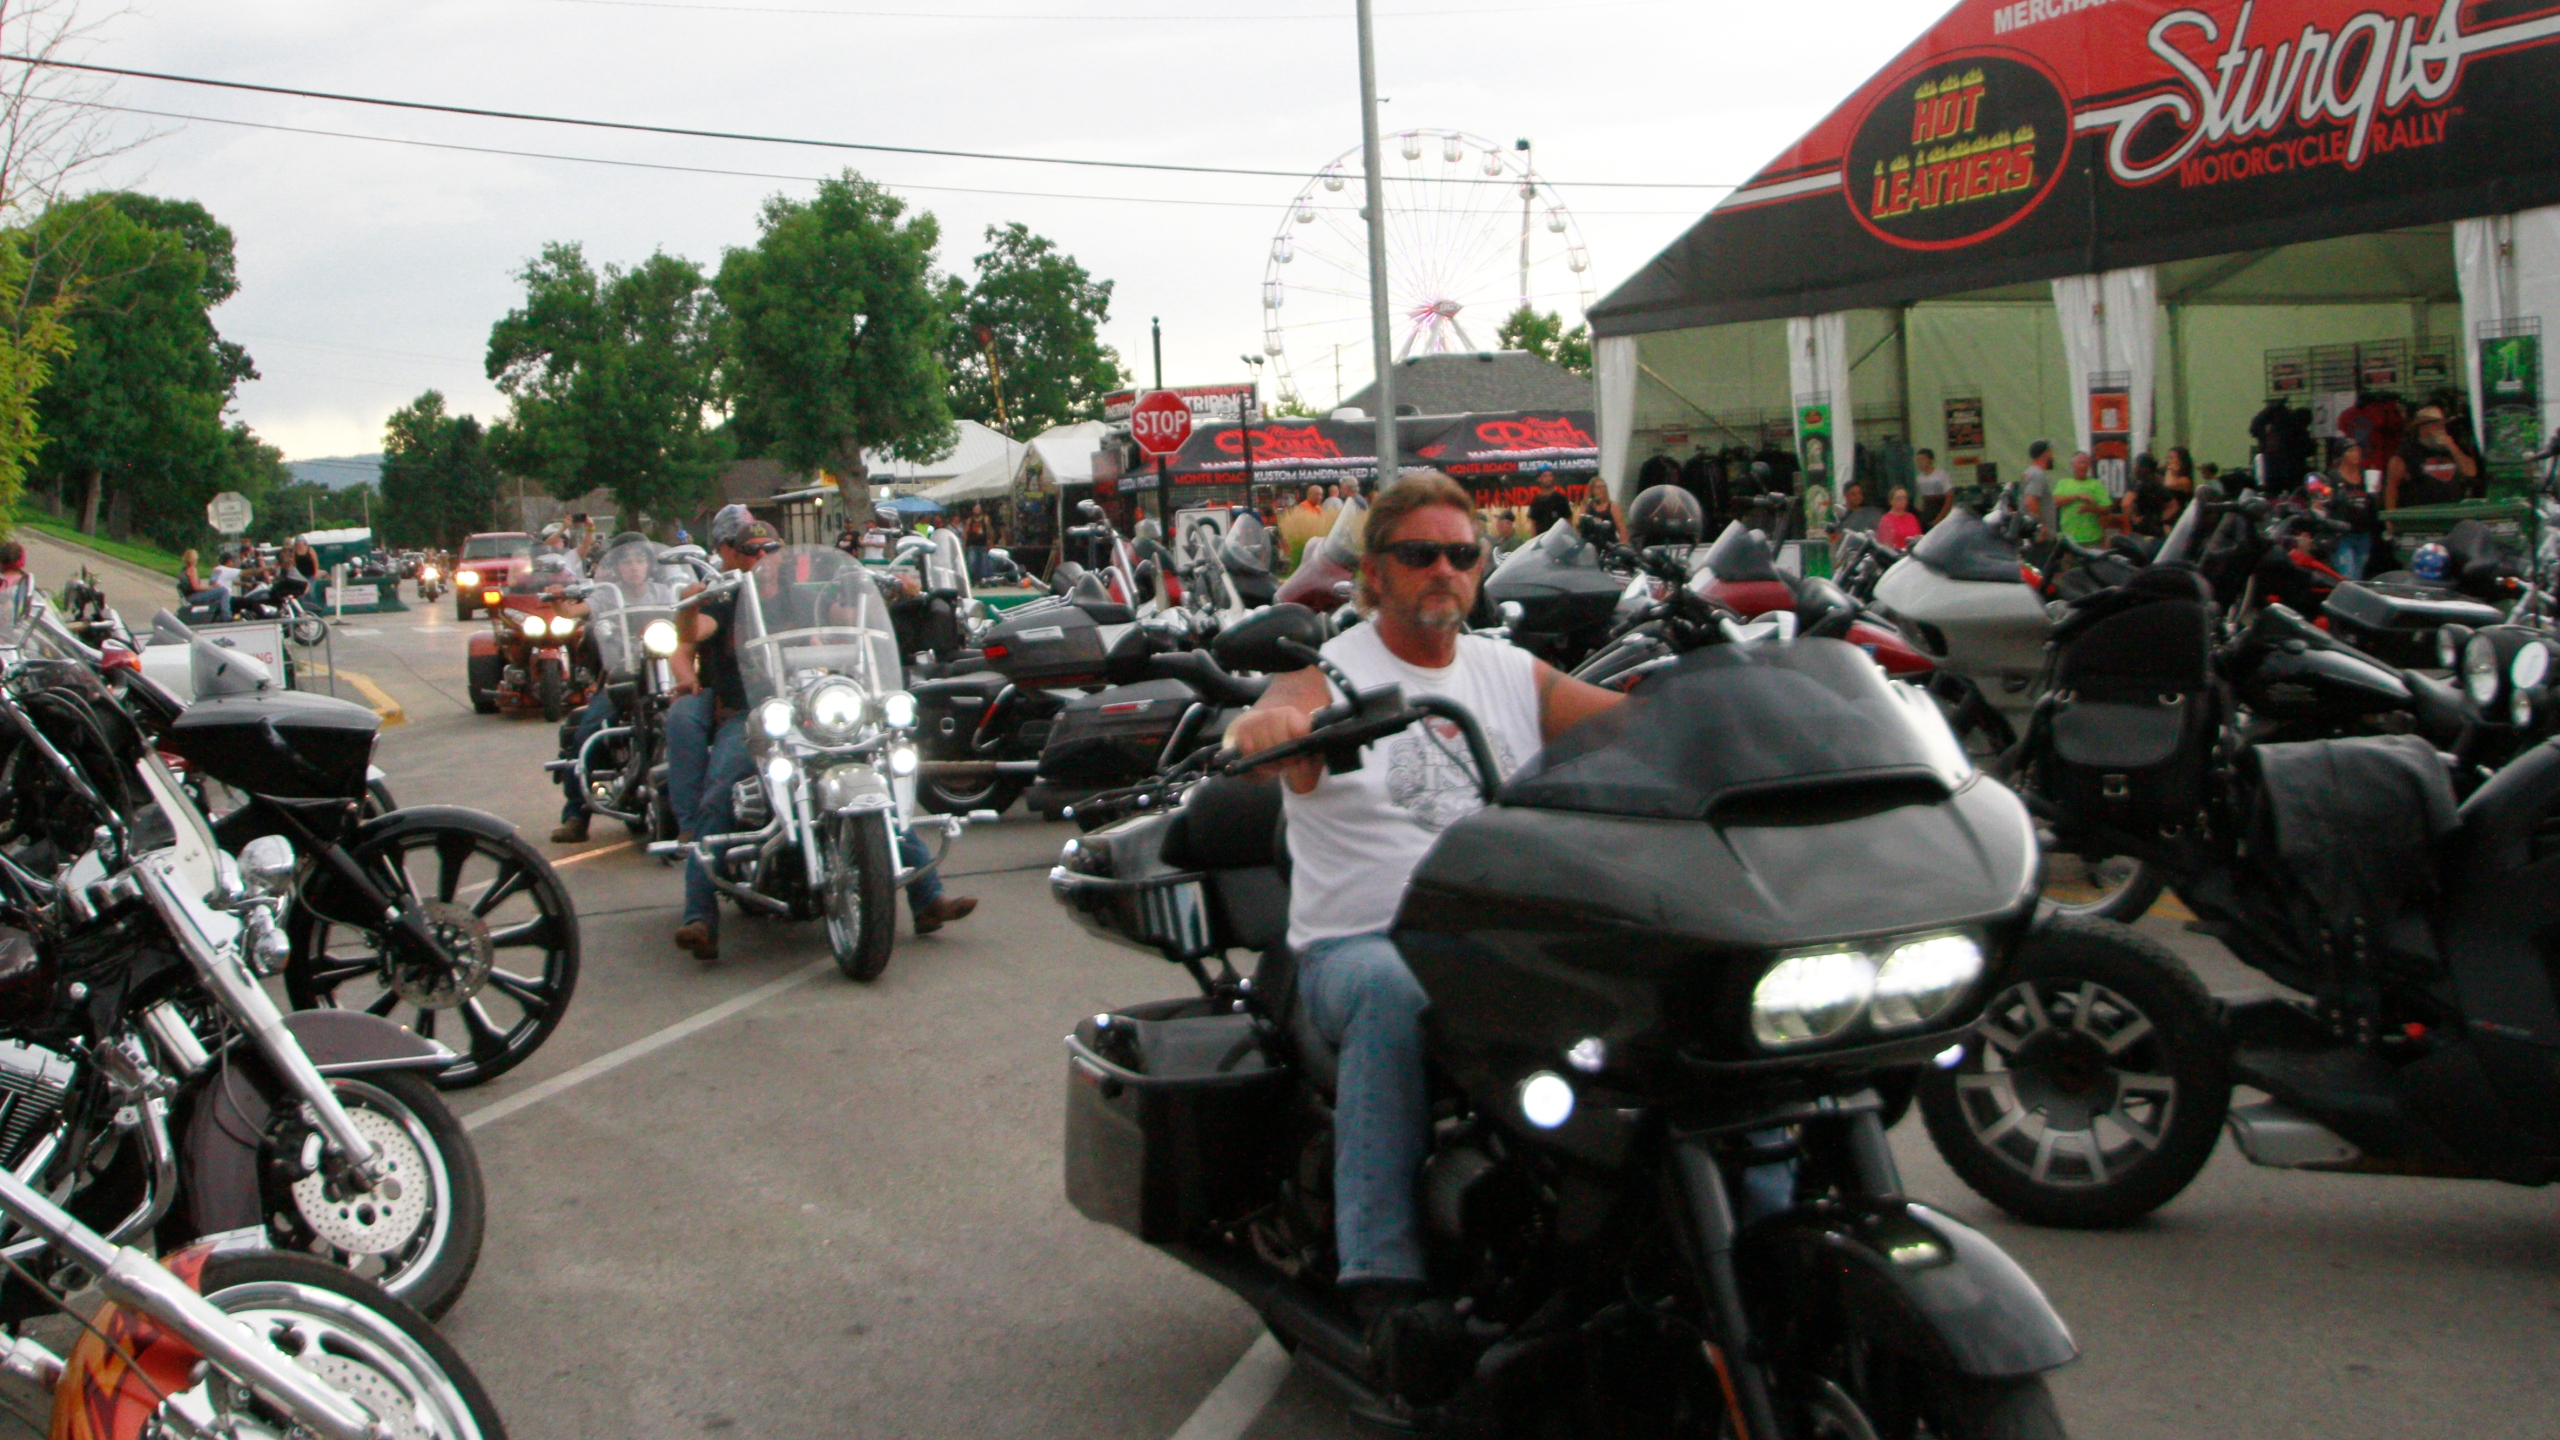 Bikers ride through downtown Sturgis on Friday, Aug. 7, 2020. (AP Photo/Stephen Groves)